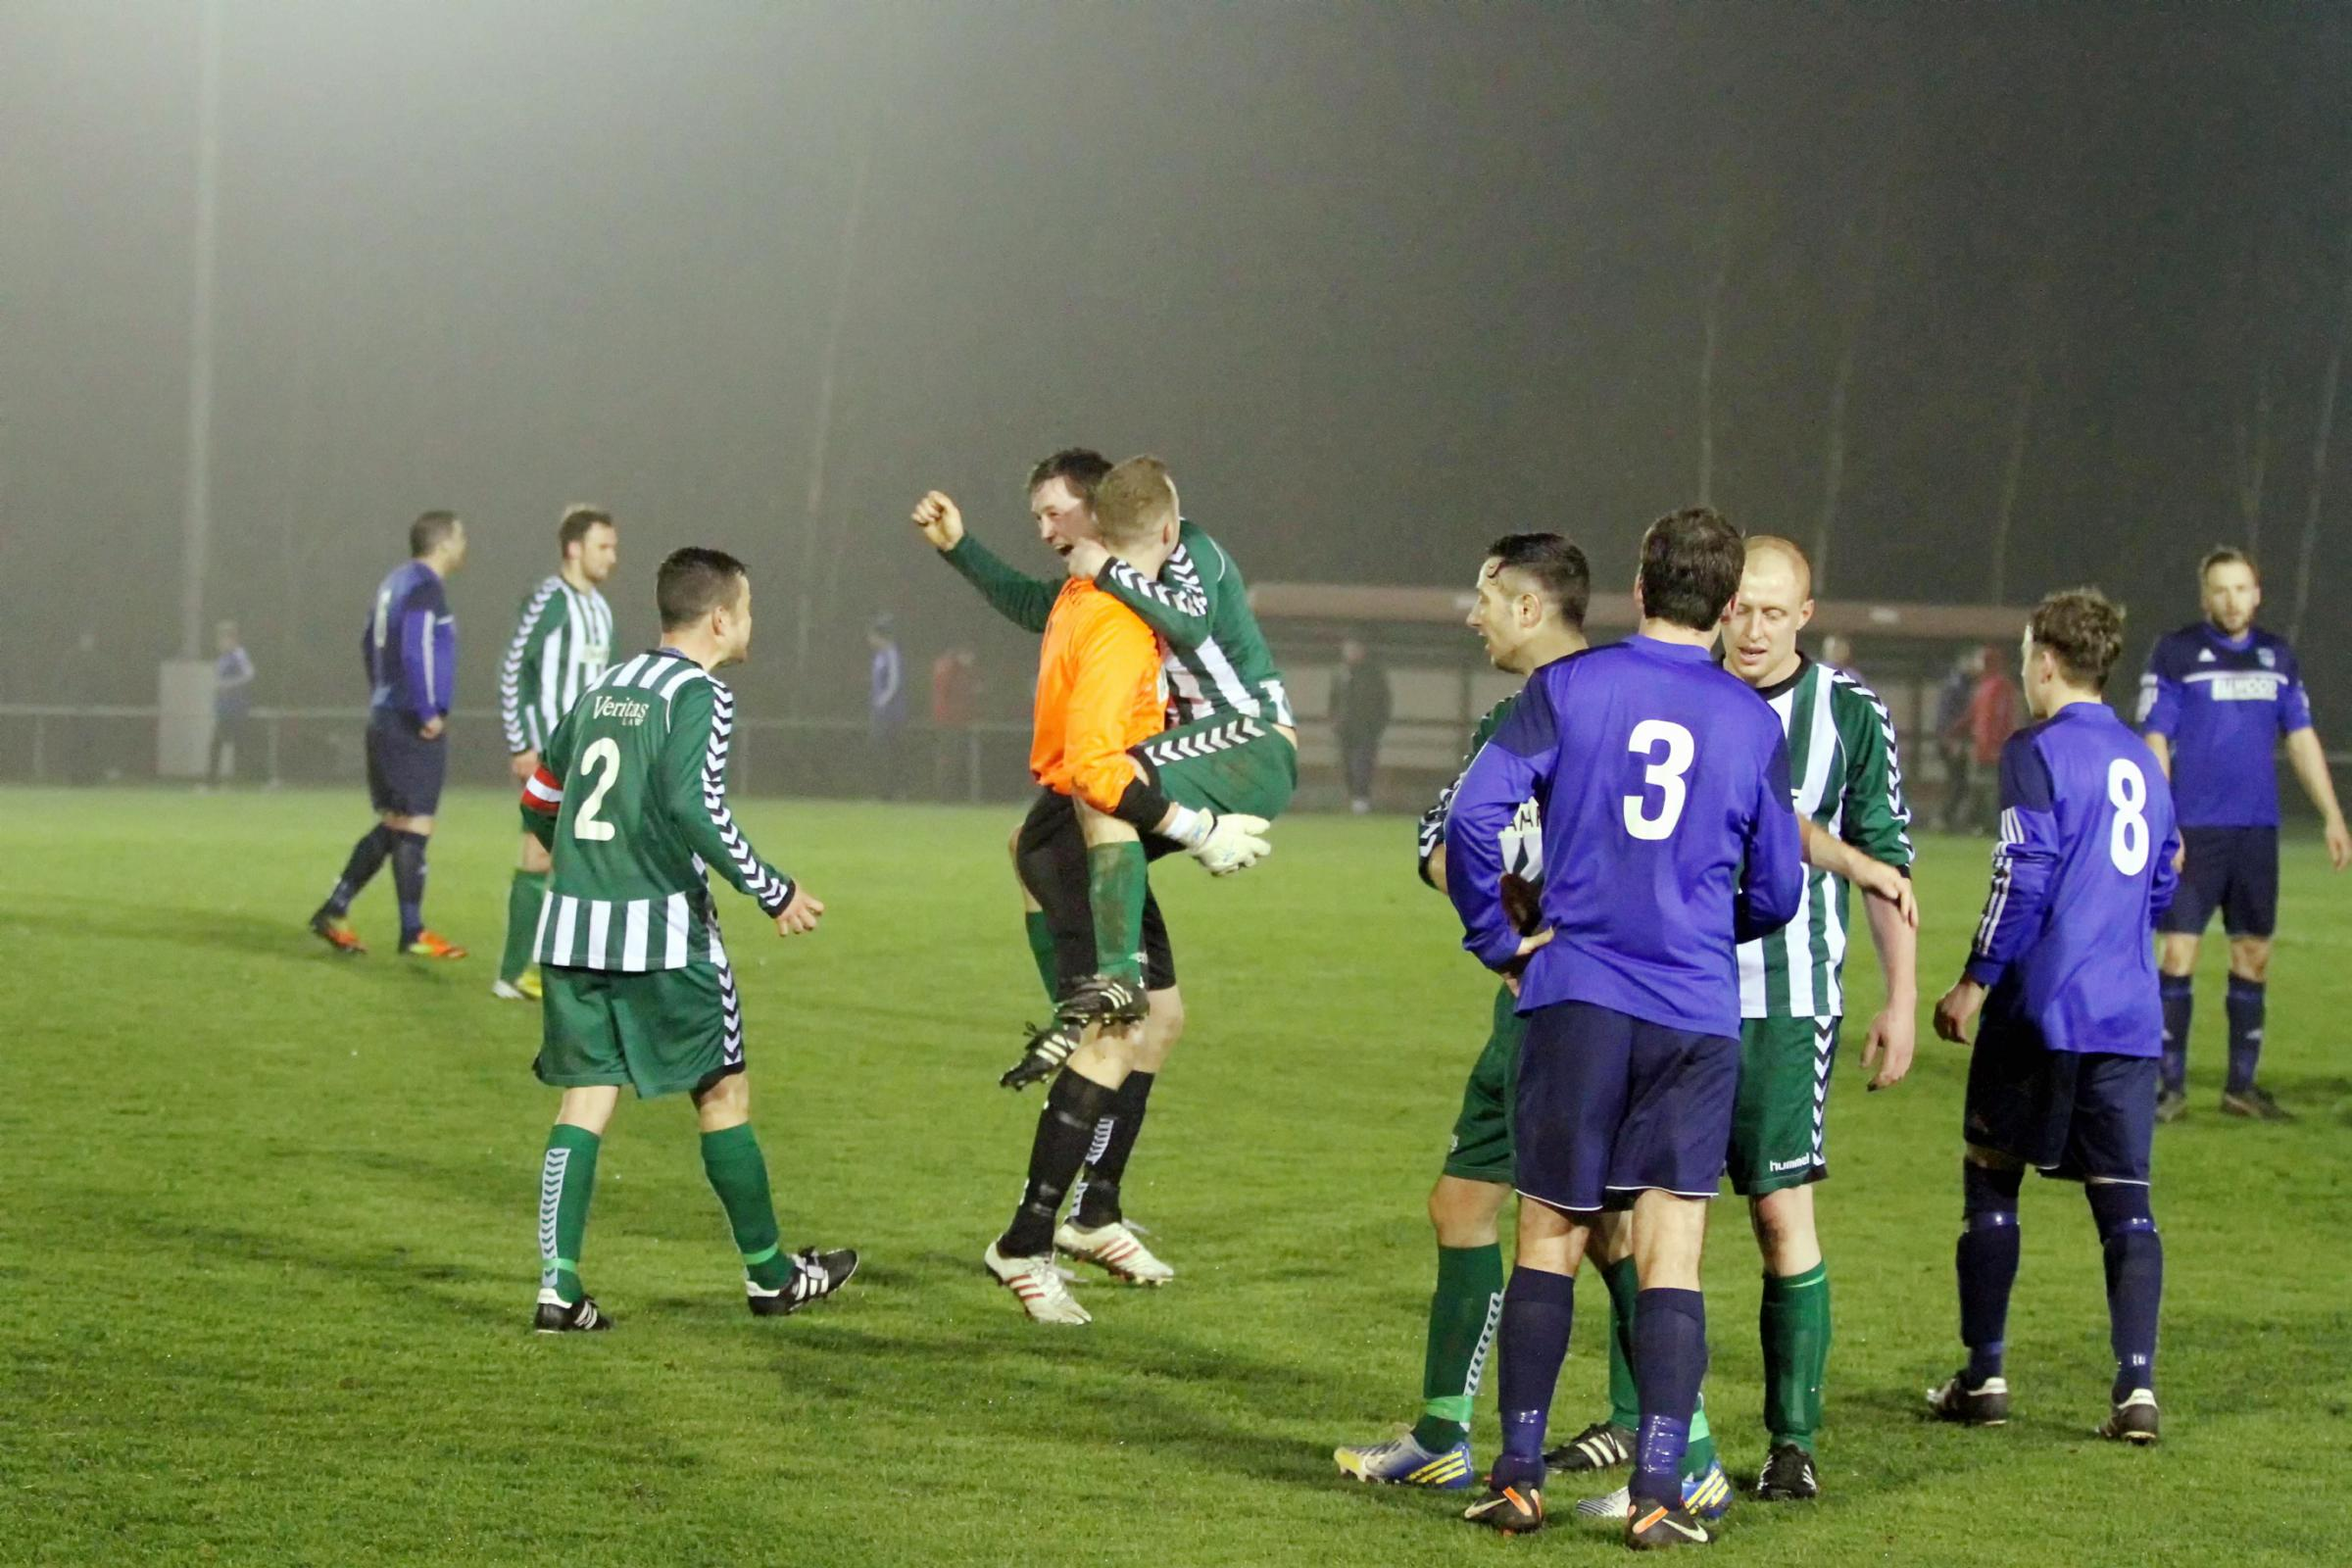 Steeton celebrate reaching the County Cup final after beating Goole 1-0 Picture: Simon Pickles